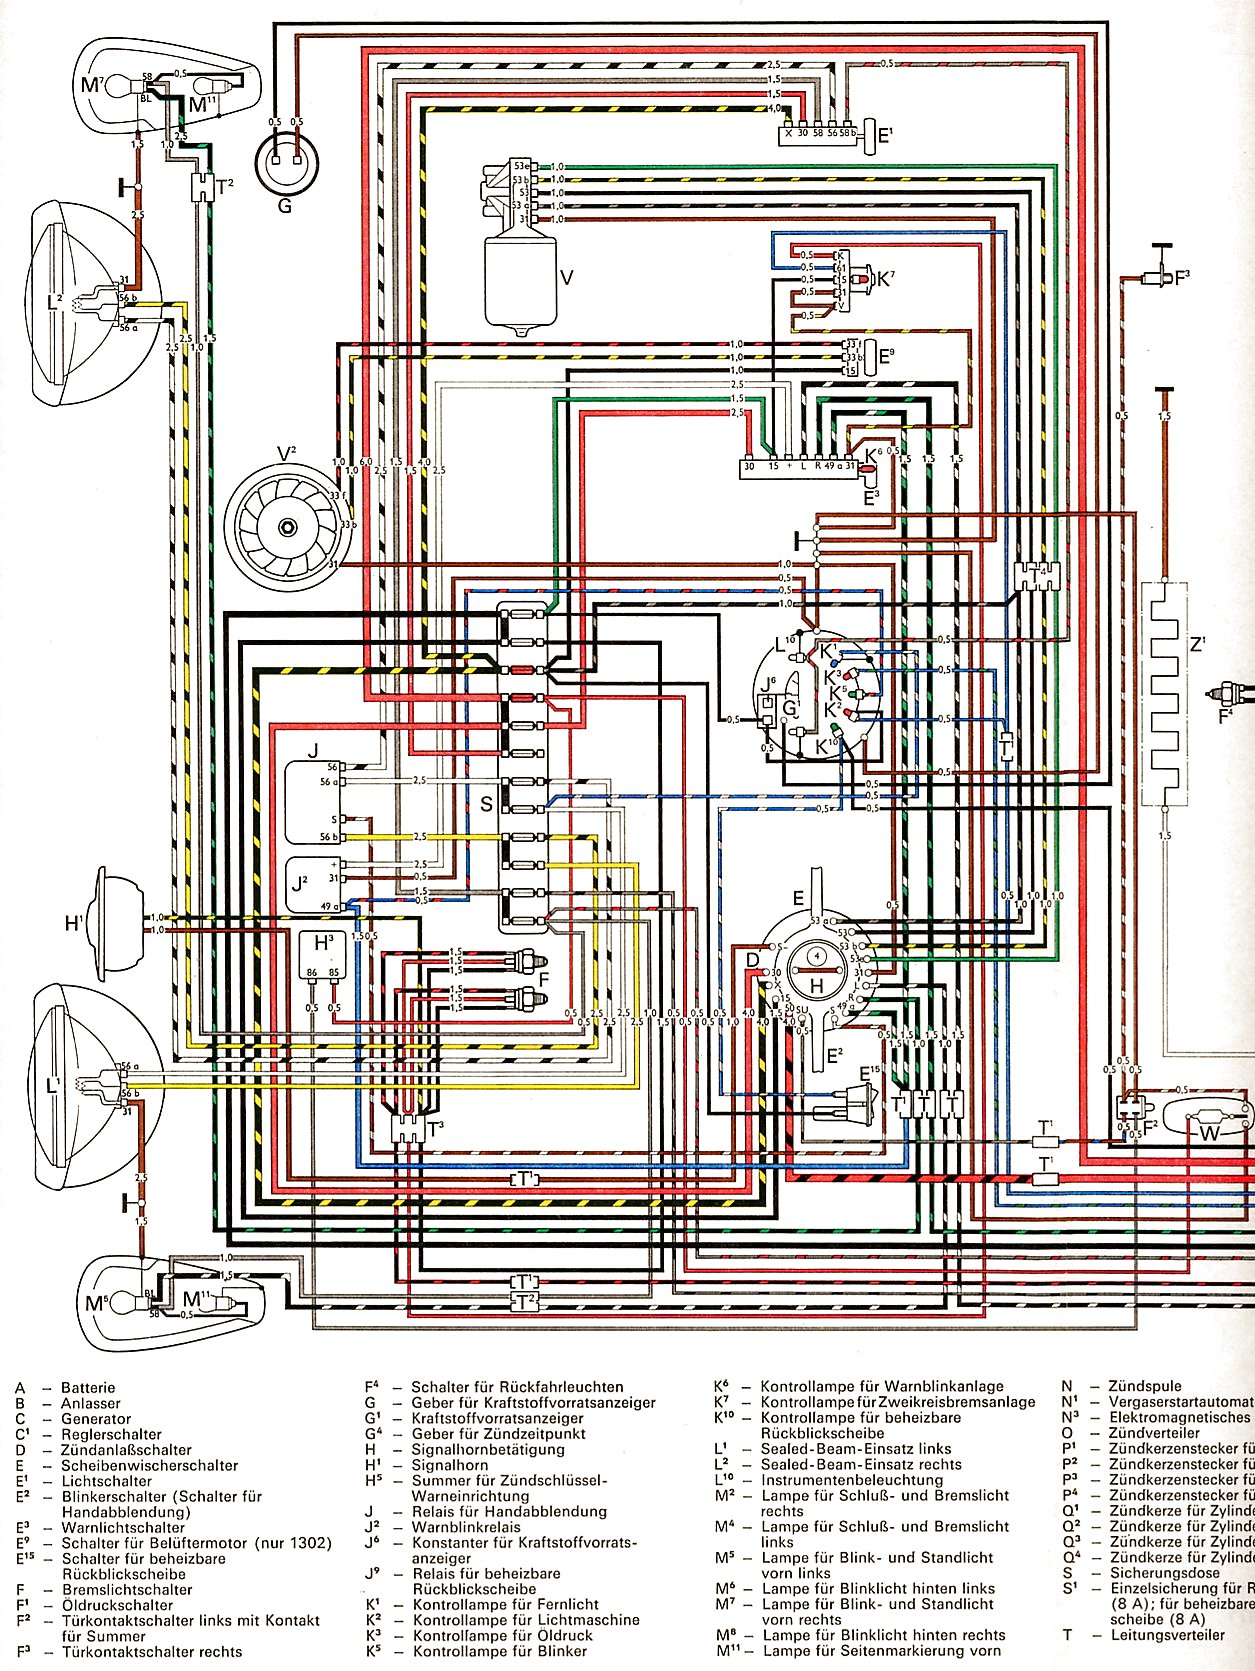 1971 VW Super Beetle Wiring Diagram on 1973 super beetle wiring diagram